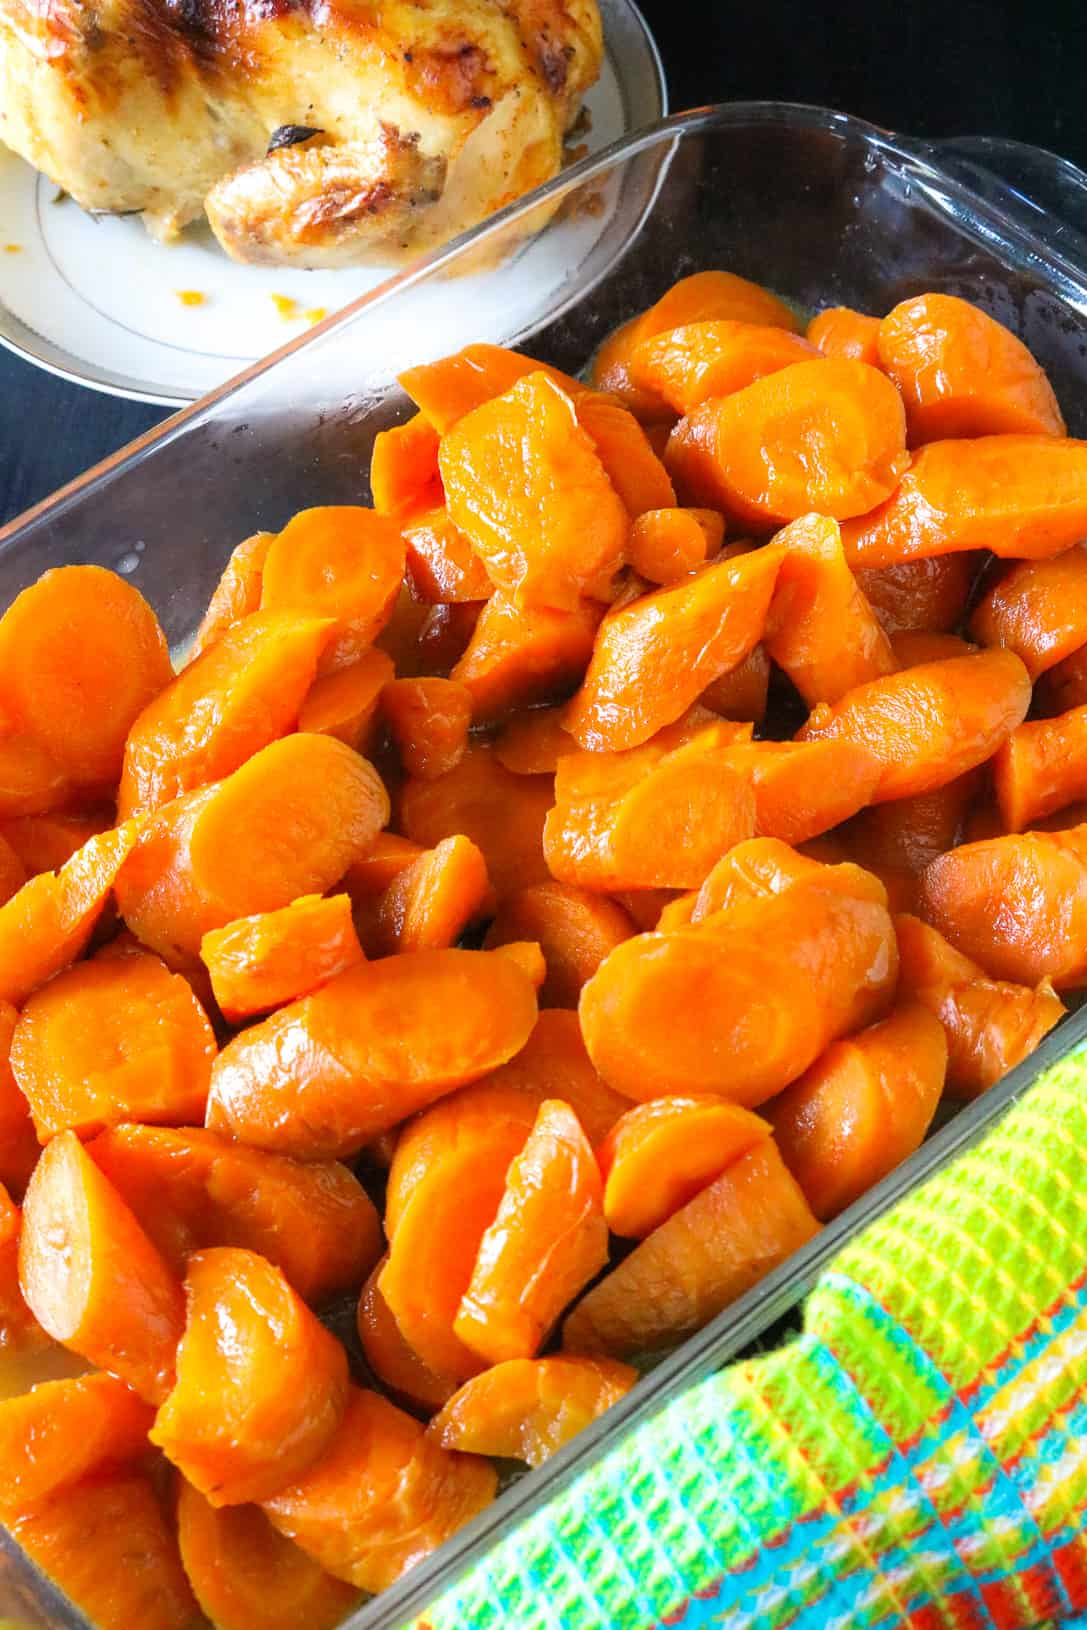 cooked carrots in glass tray